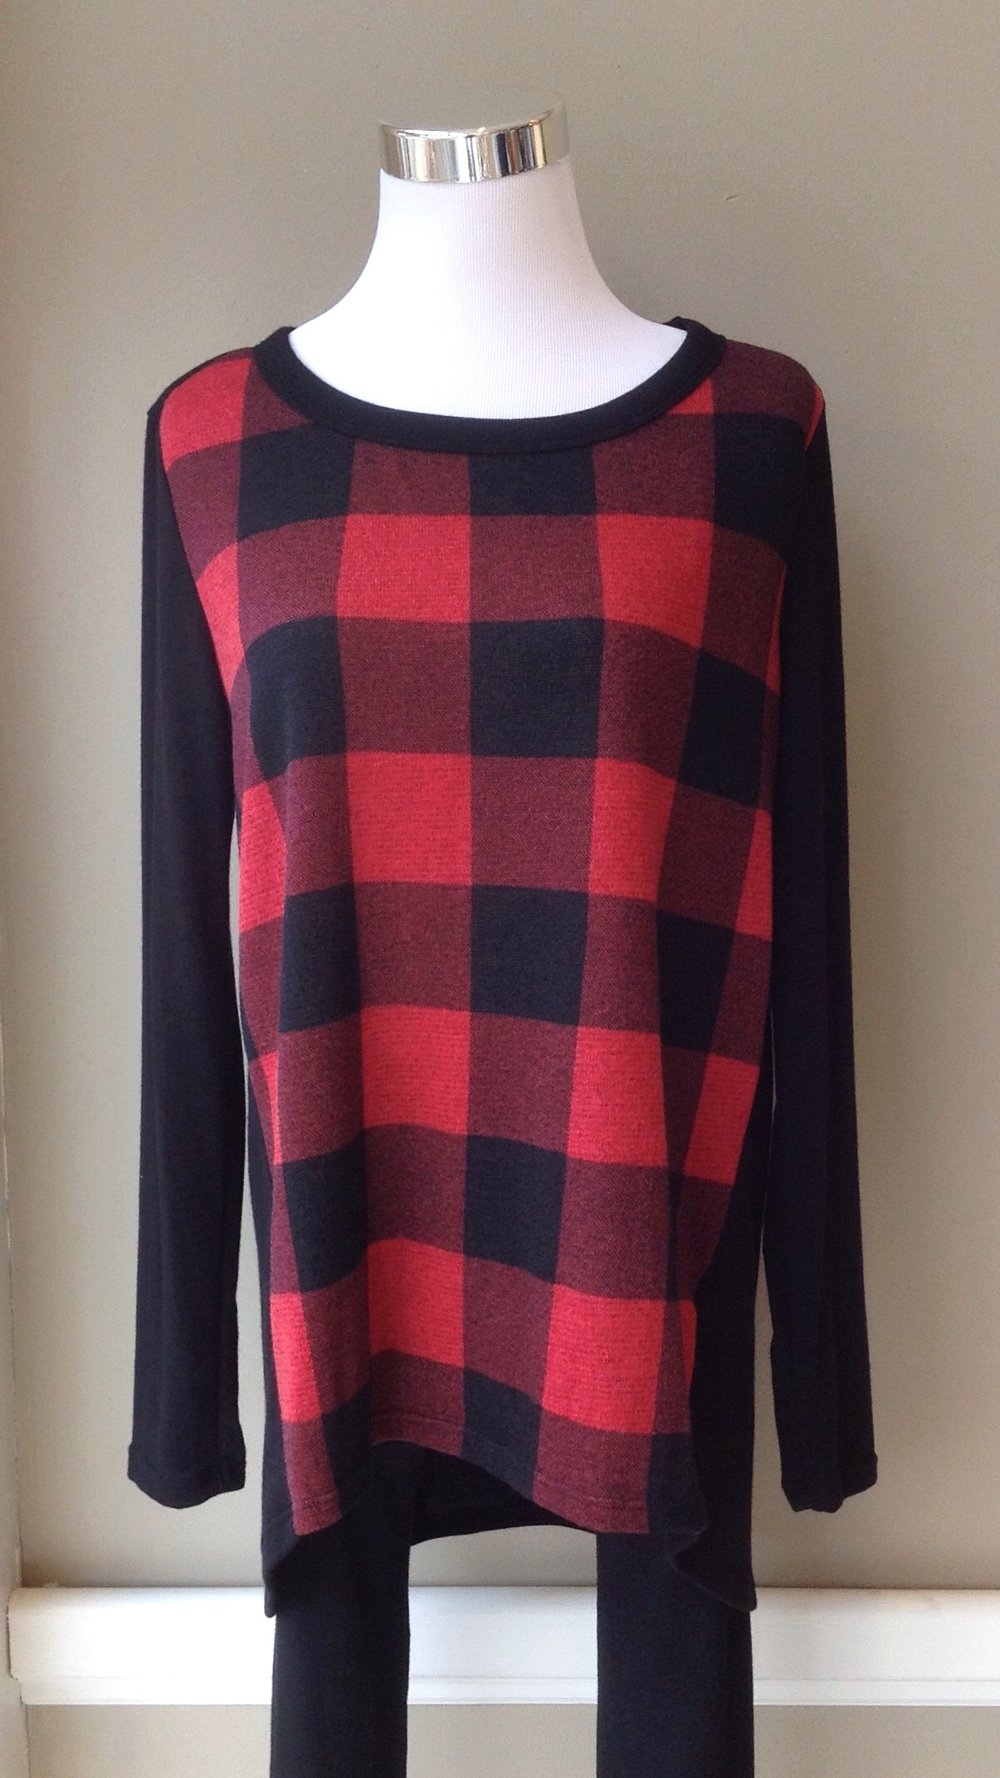 Buffalo check top with high-low hem and solid black knit sleeves, $32.  Low stock but more on the way!